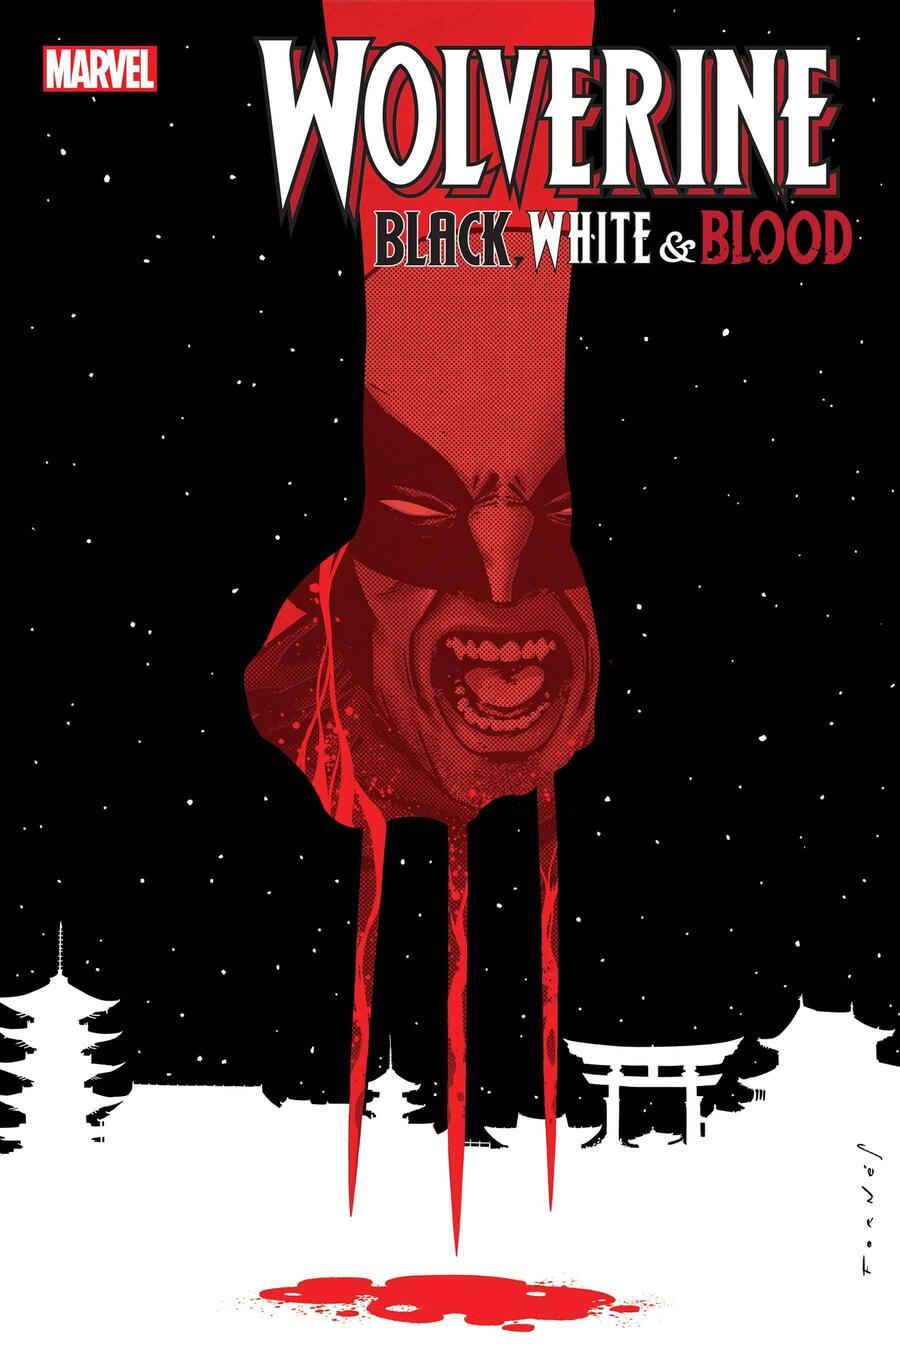 WOLVERINE: BLACK, WHITE, & BLOOD #3 cover by Jorge Fornés